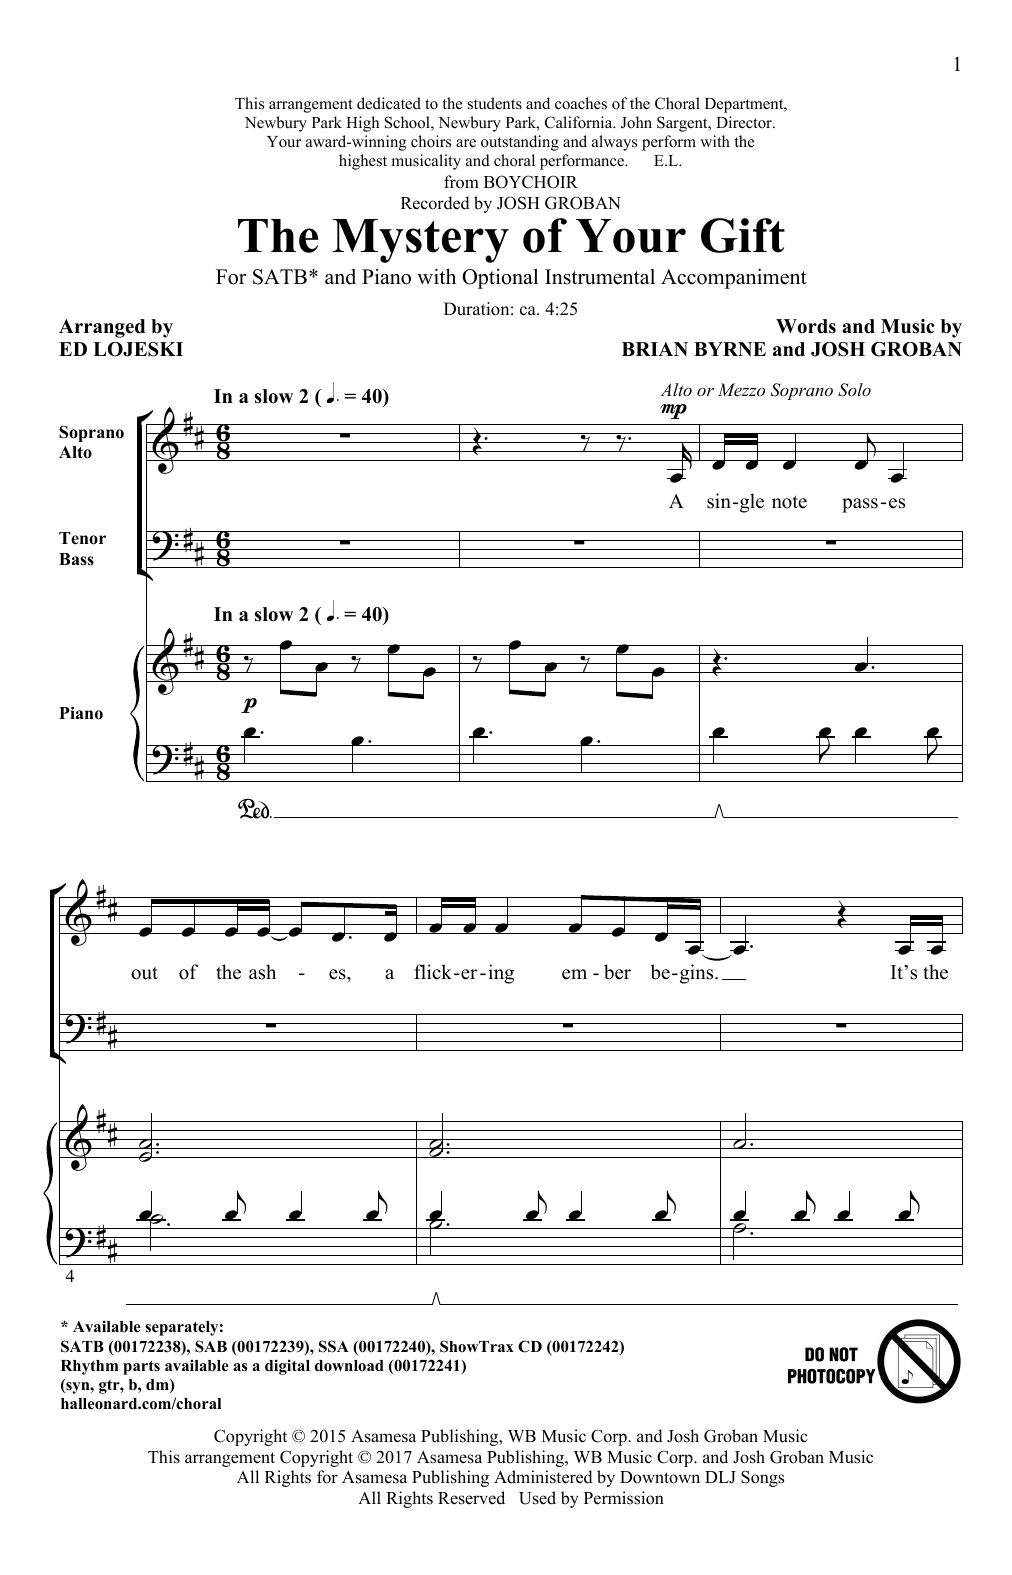 The Mystery Of Your Gift (SATB Choir)